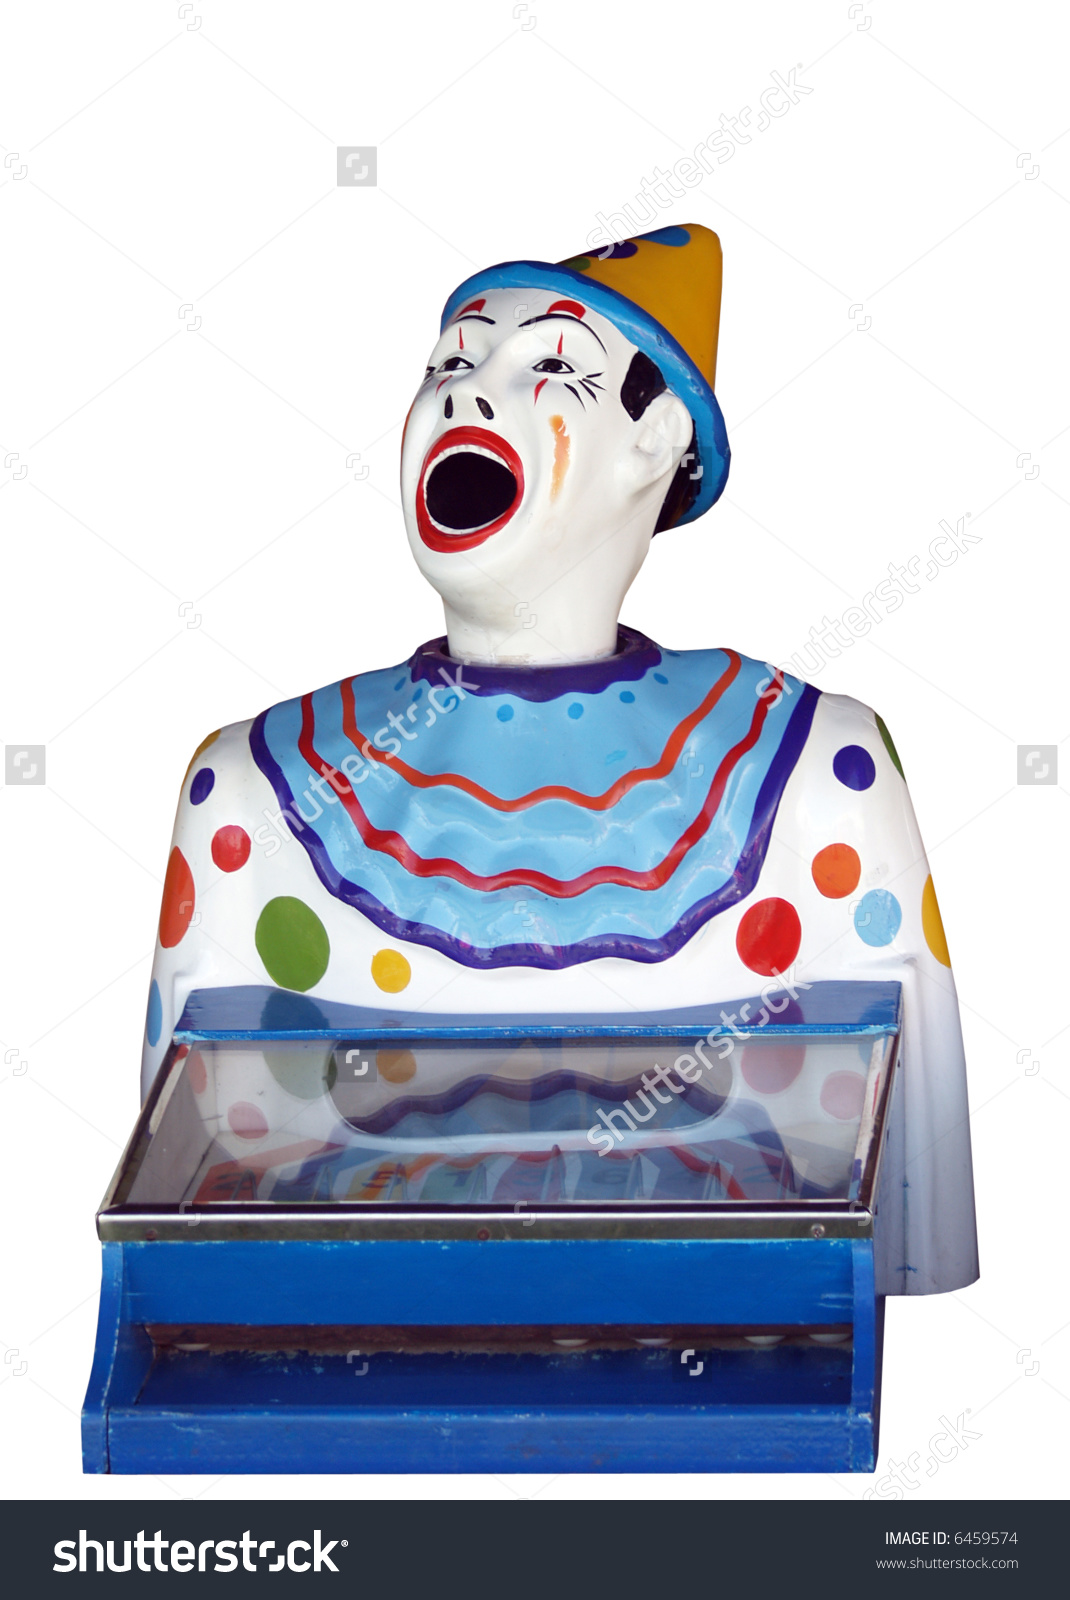 A Feed The Clown Carnival Game Stock Photo 6459574 : Shutterstock.